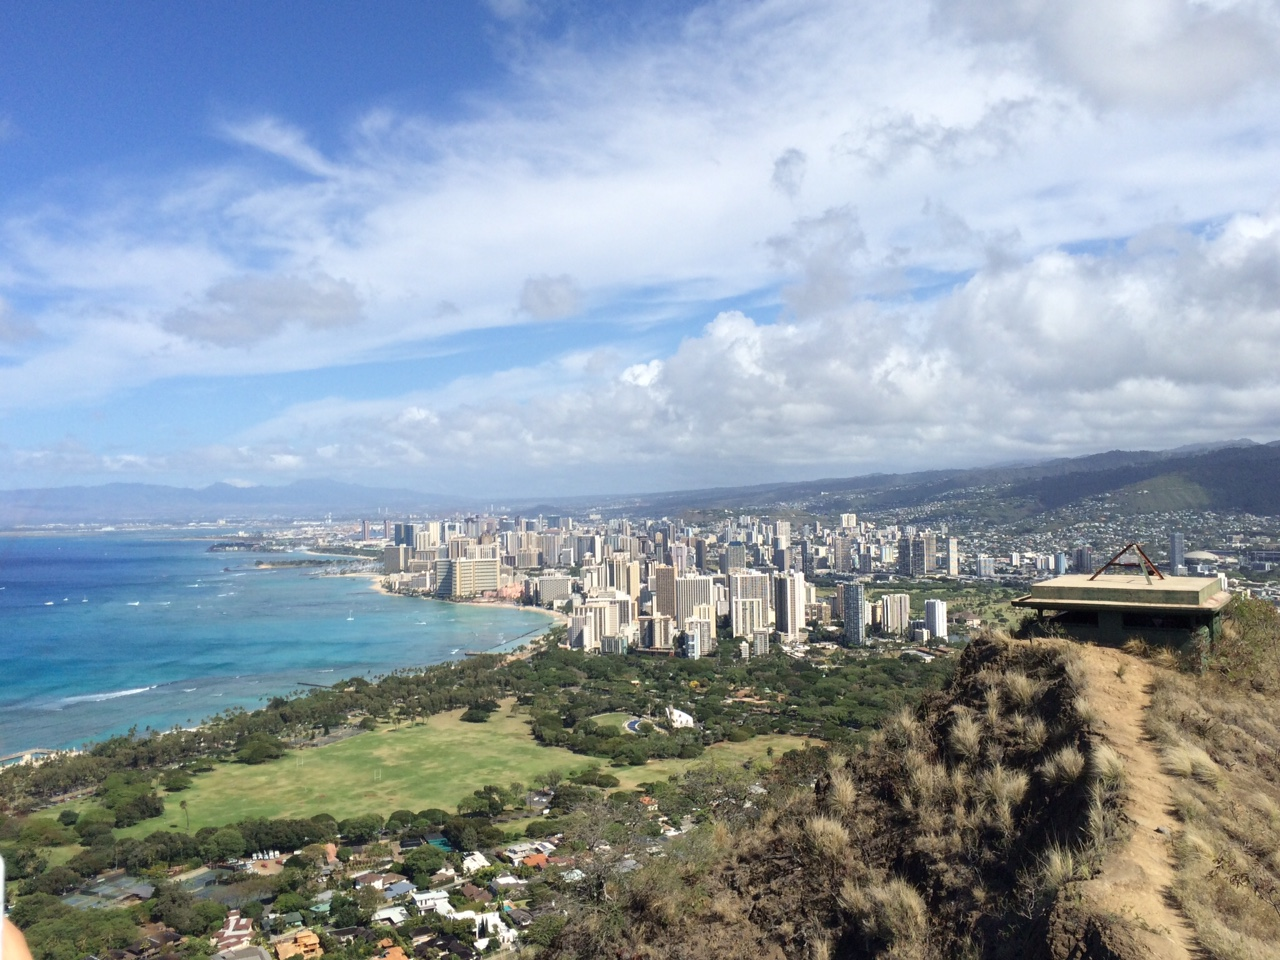 us-hs-TW1537829-hawaii expedition_ (16)